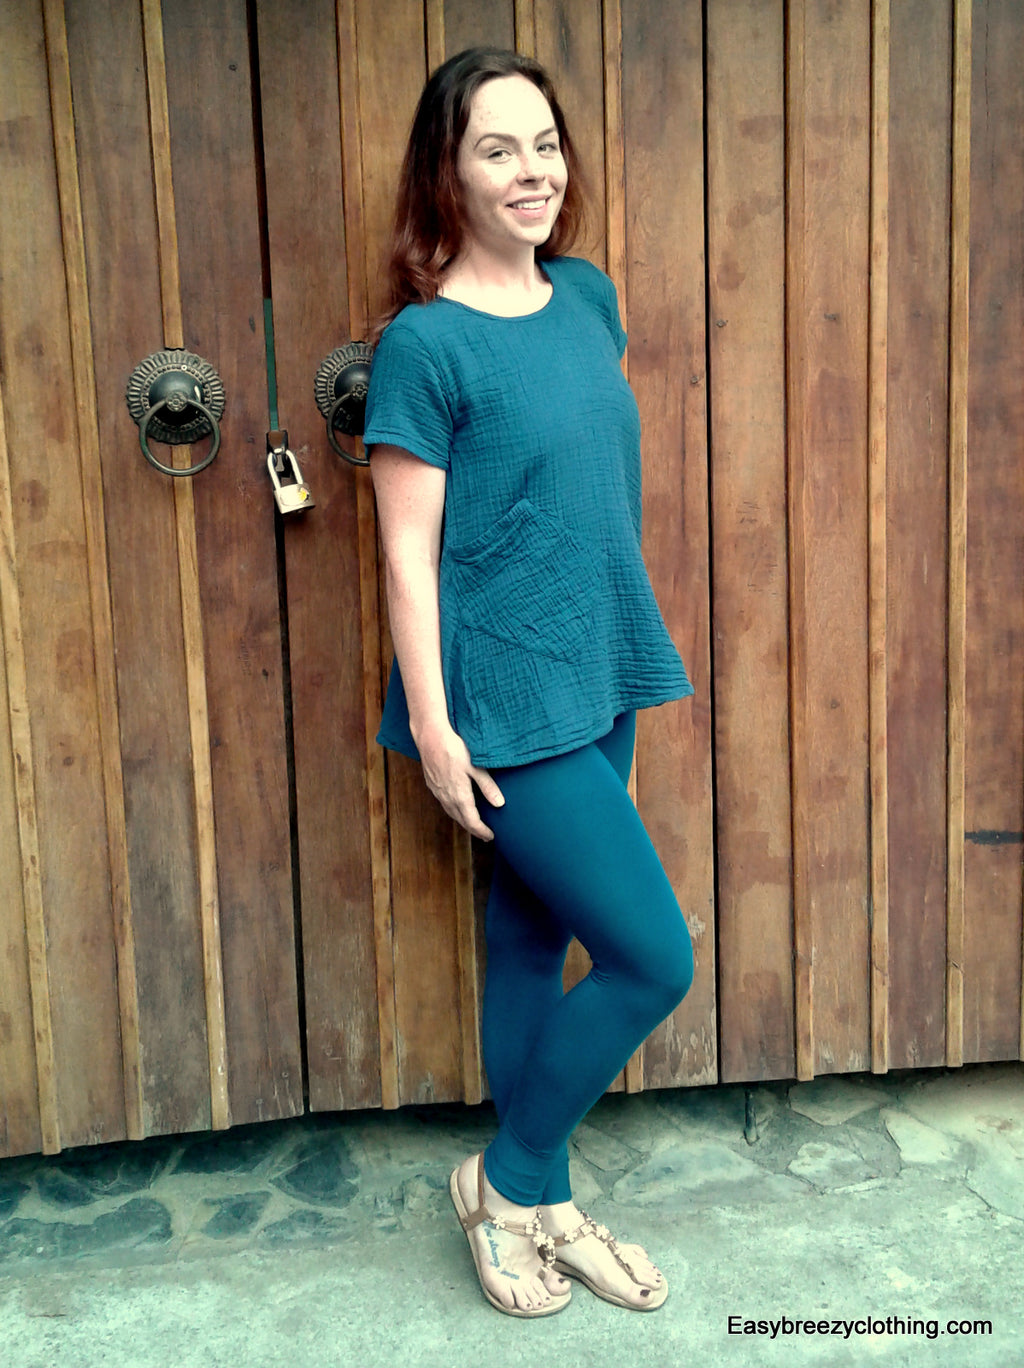 Double Gauze Bias Cut Top with Short Sleeves,Double Gauze Tops,[Easy Breezy Clothing]